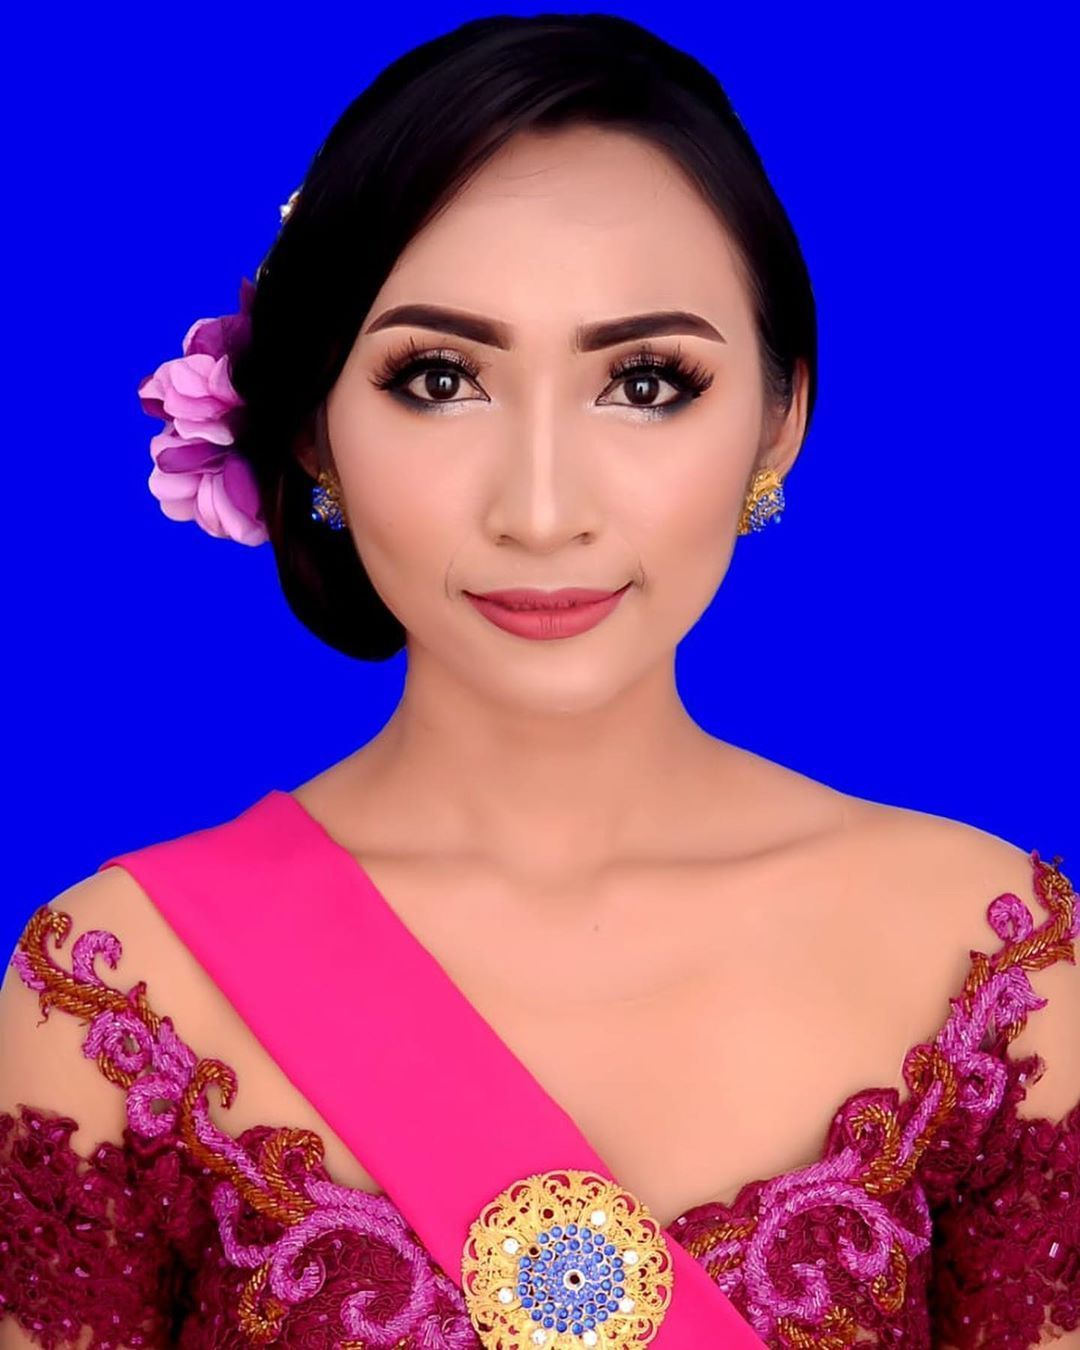 Makeup Hairdo Kebaya Triutarini Gallery More Info Price List Hairdo Makeup Kebaya